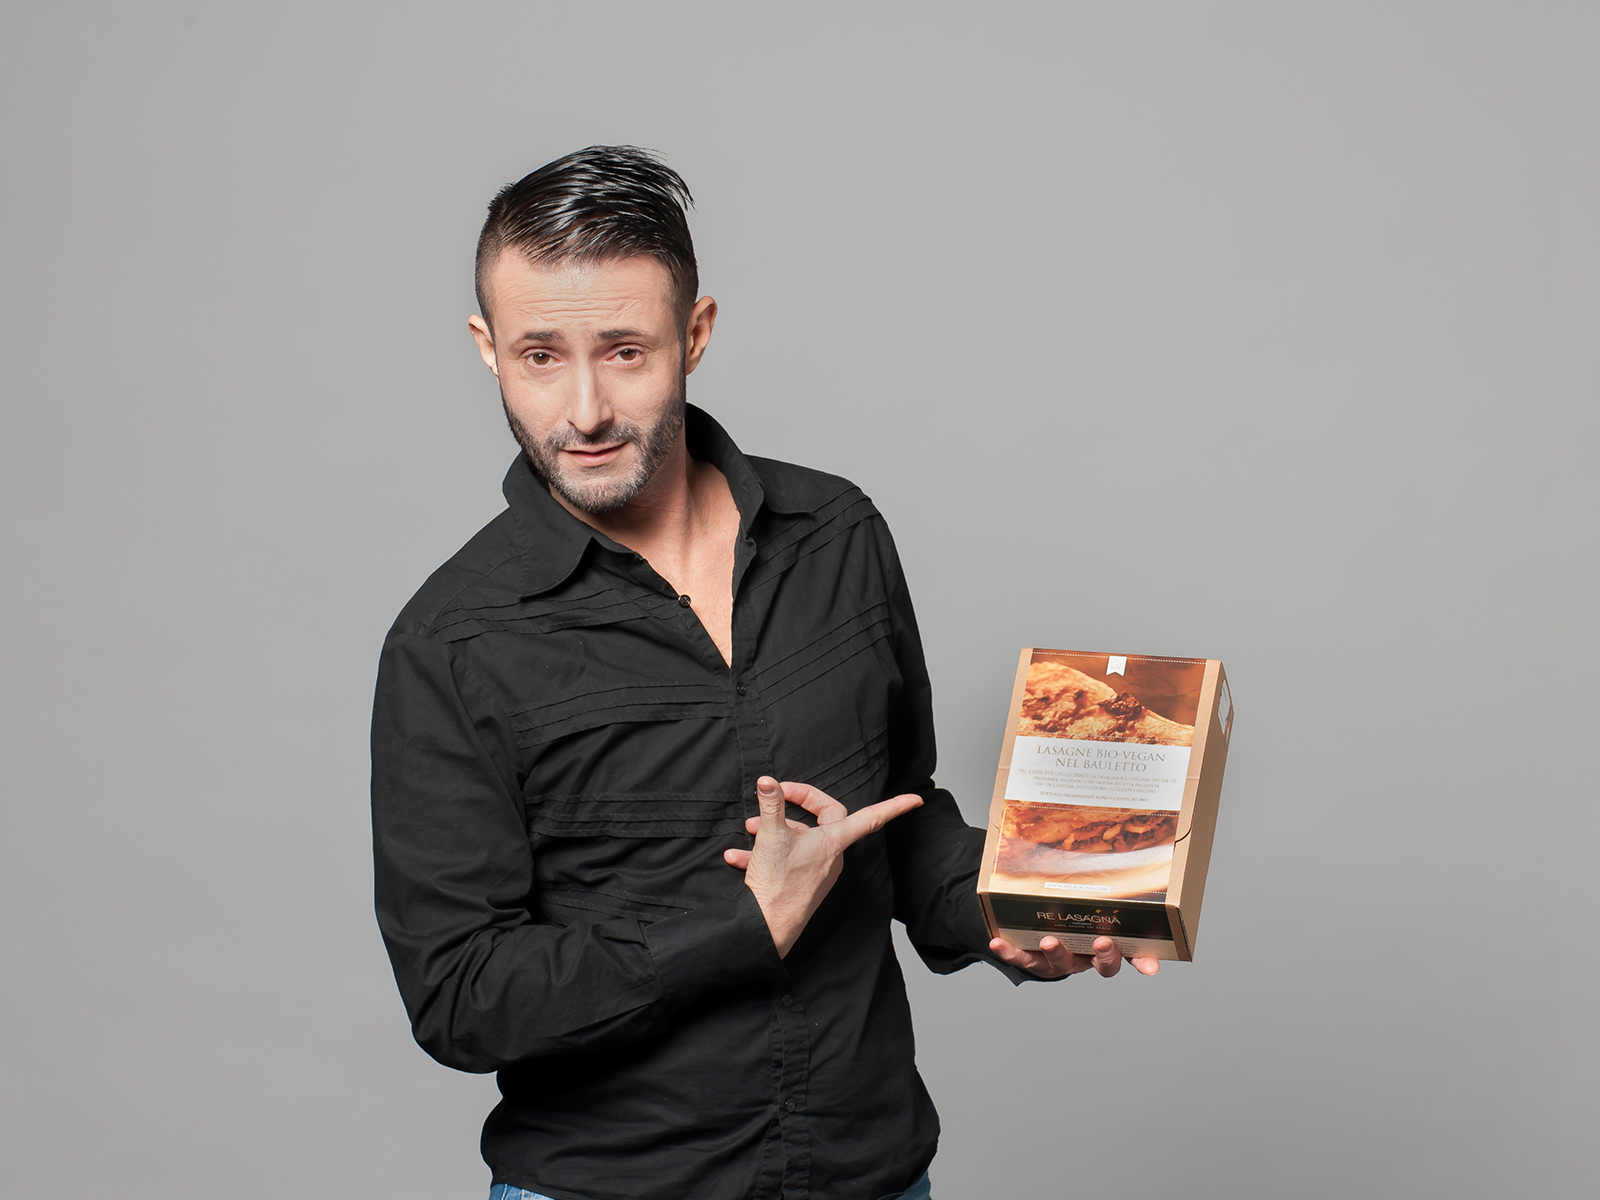 Gilberto Argini, founder & owner Re Lasagna®